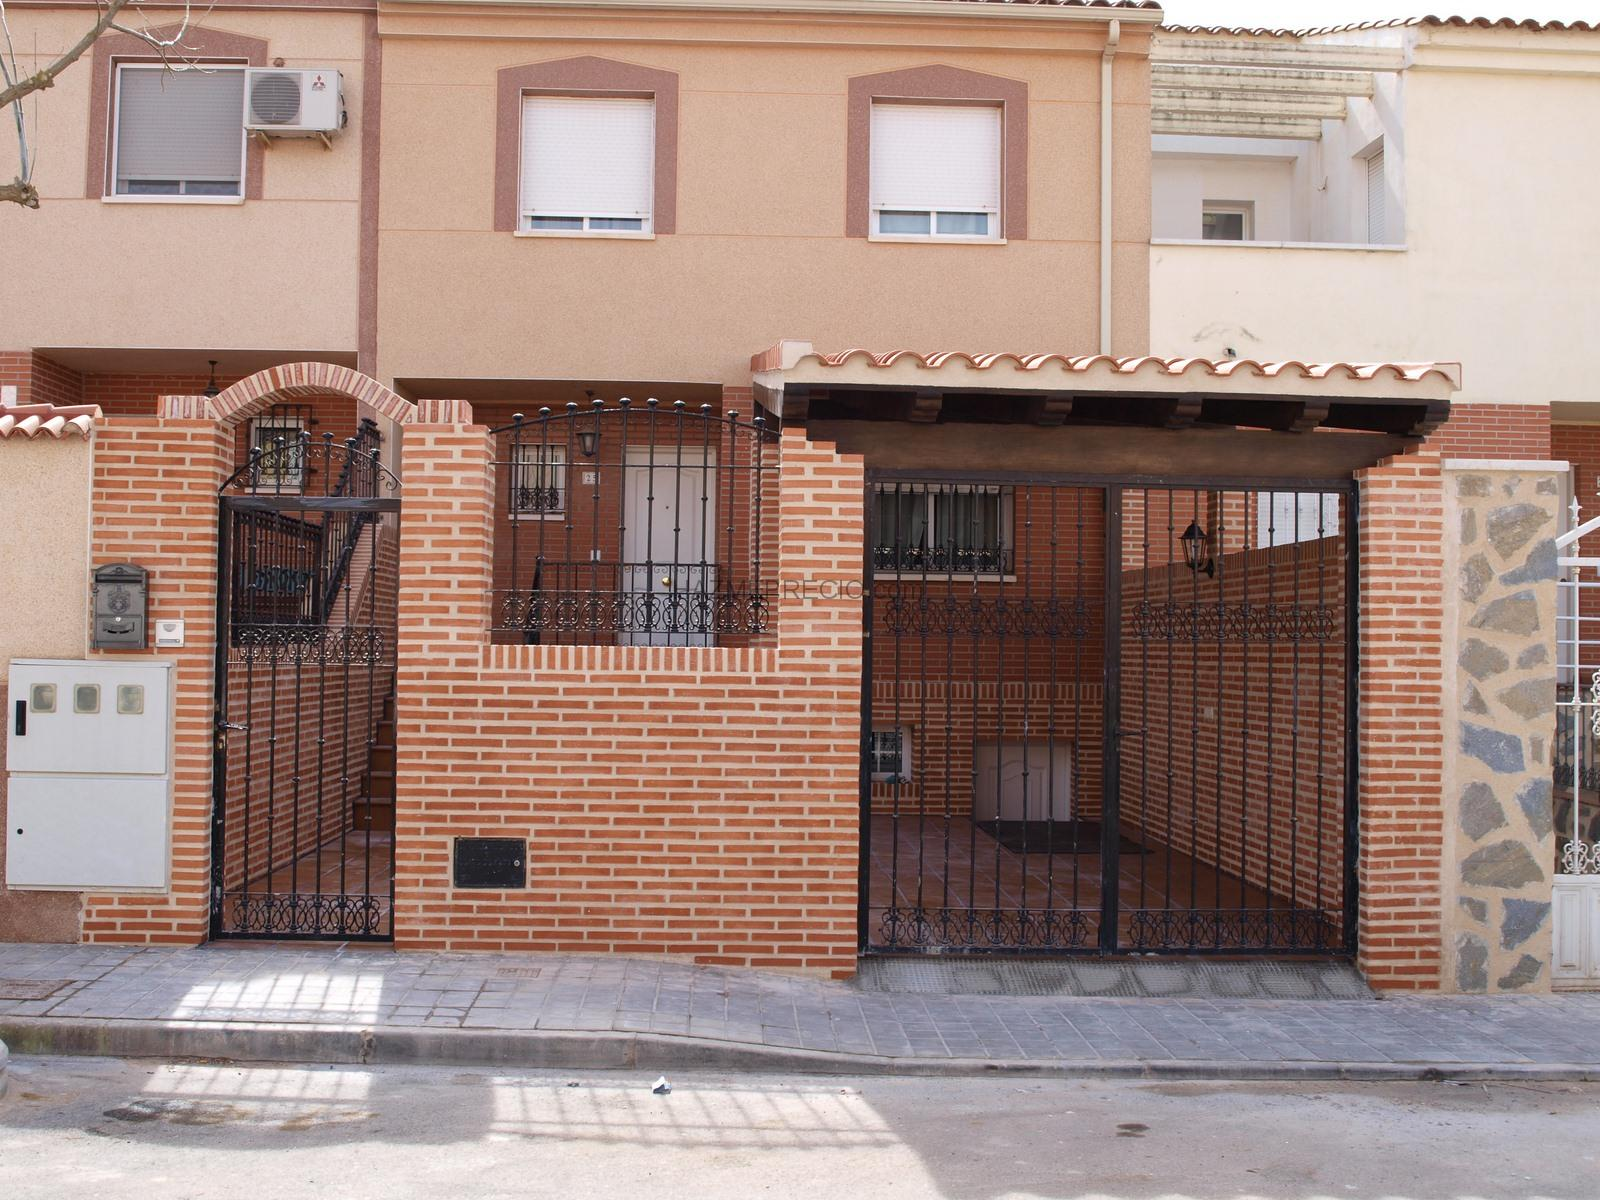 1000 images about fachada on pinterest gates automatic gate and driveway gate - Fachada ladrillo visto ...